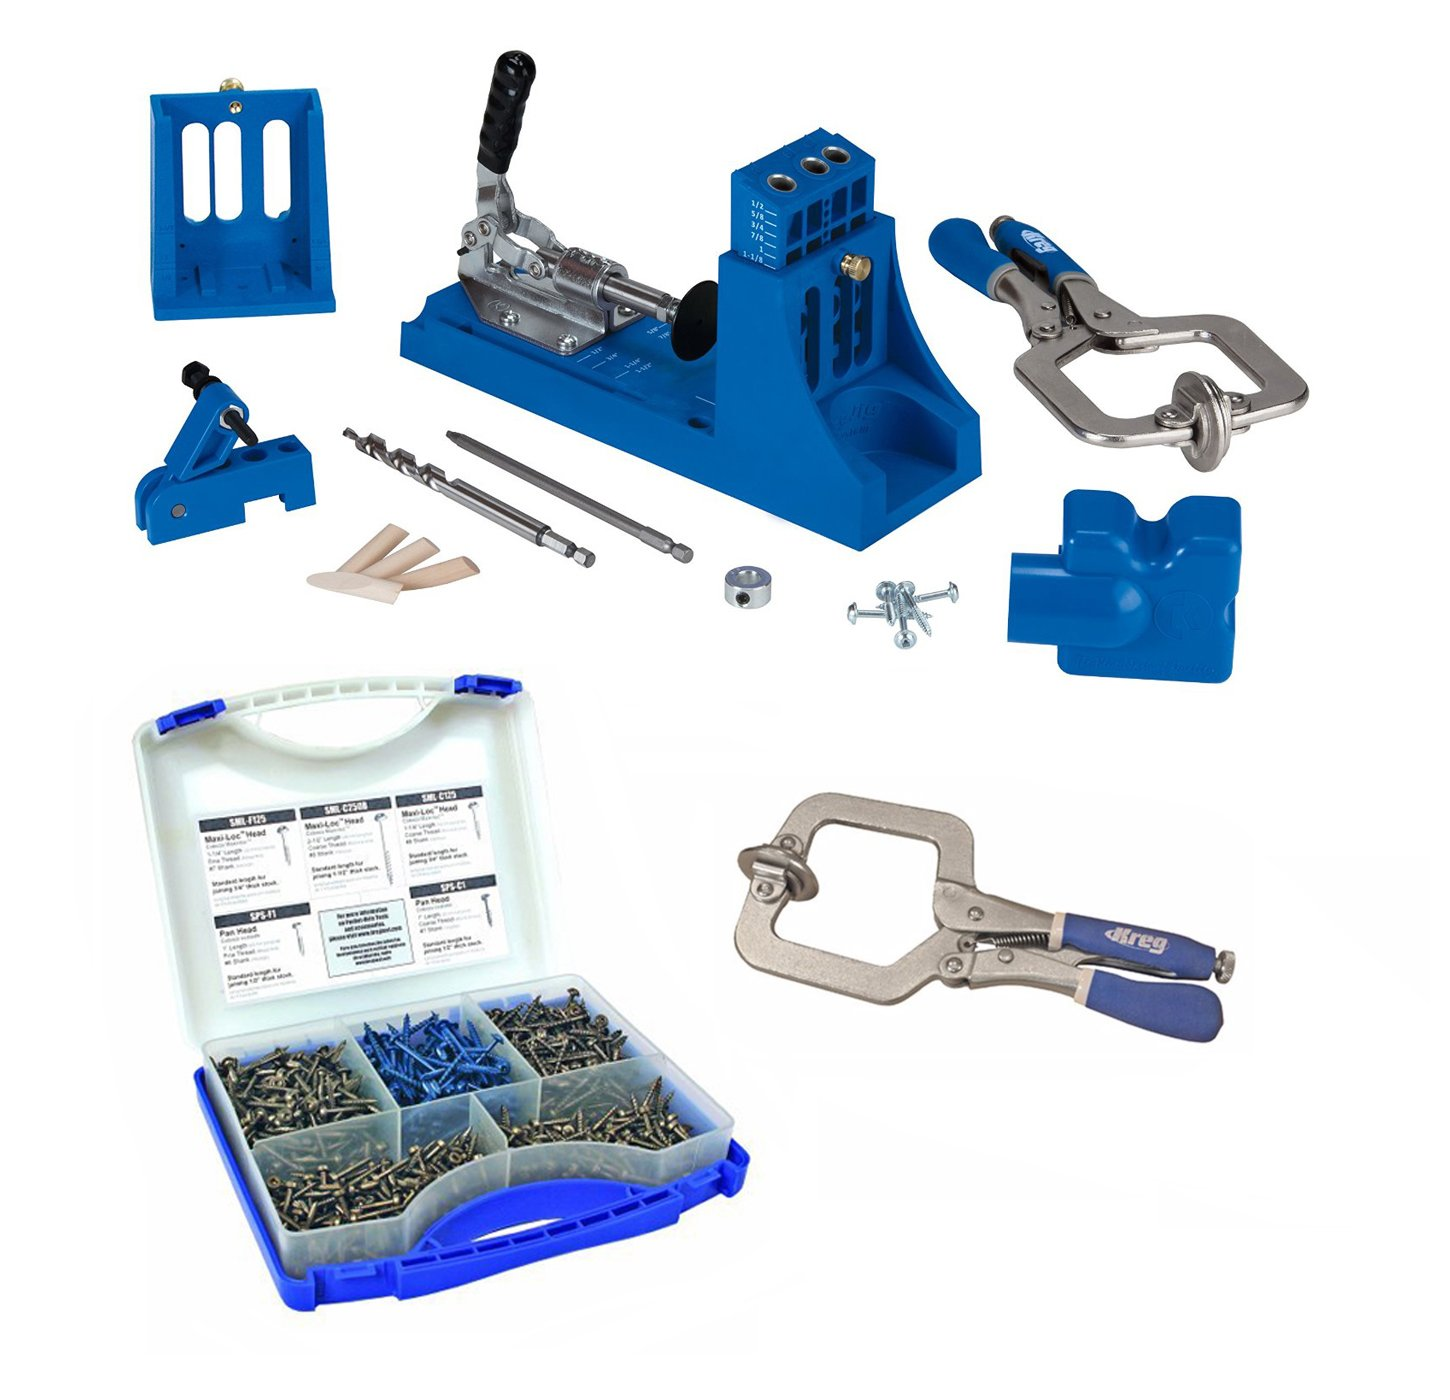 Kreg K4MS K4 Master System With Screw Kit & Premium Face Clamp